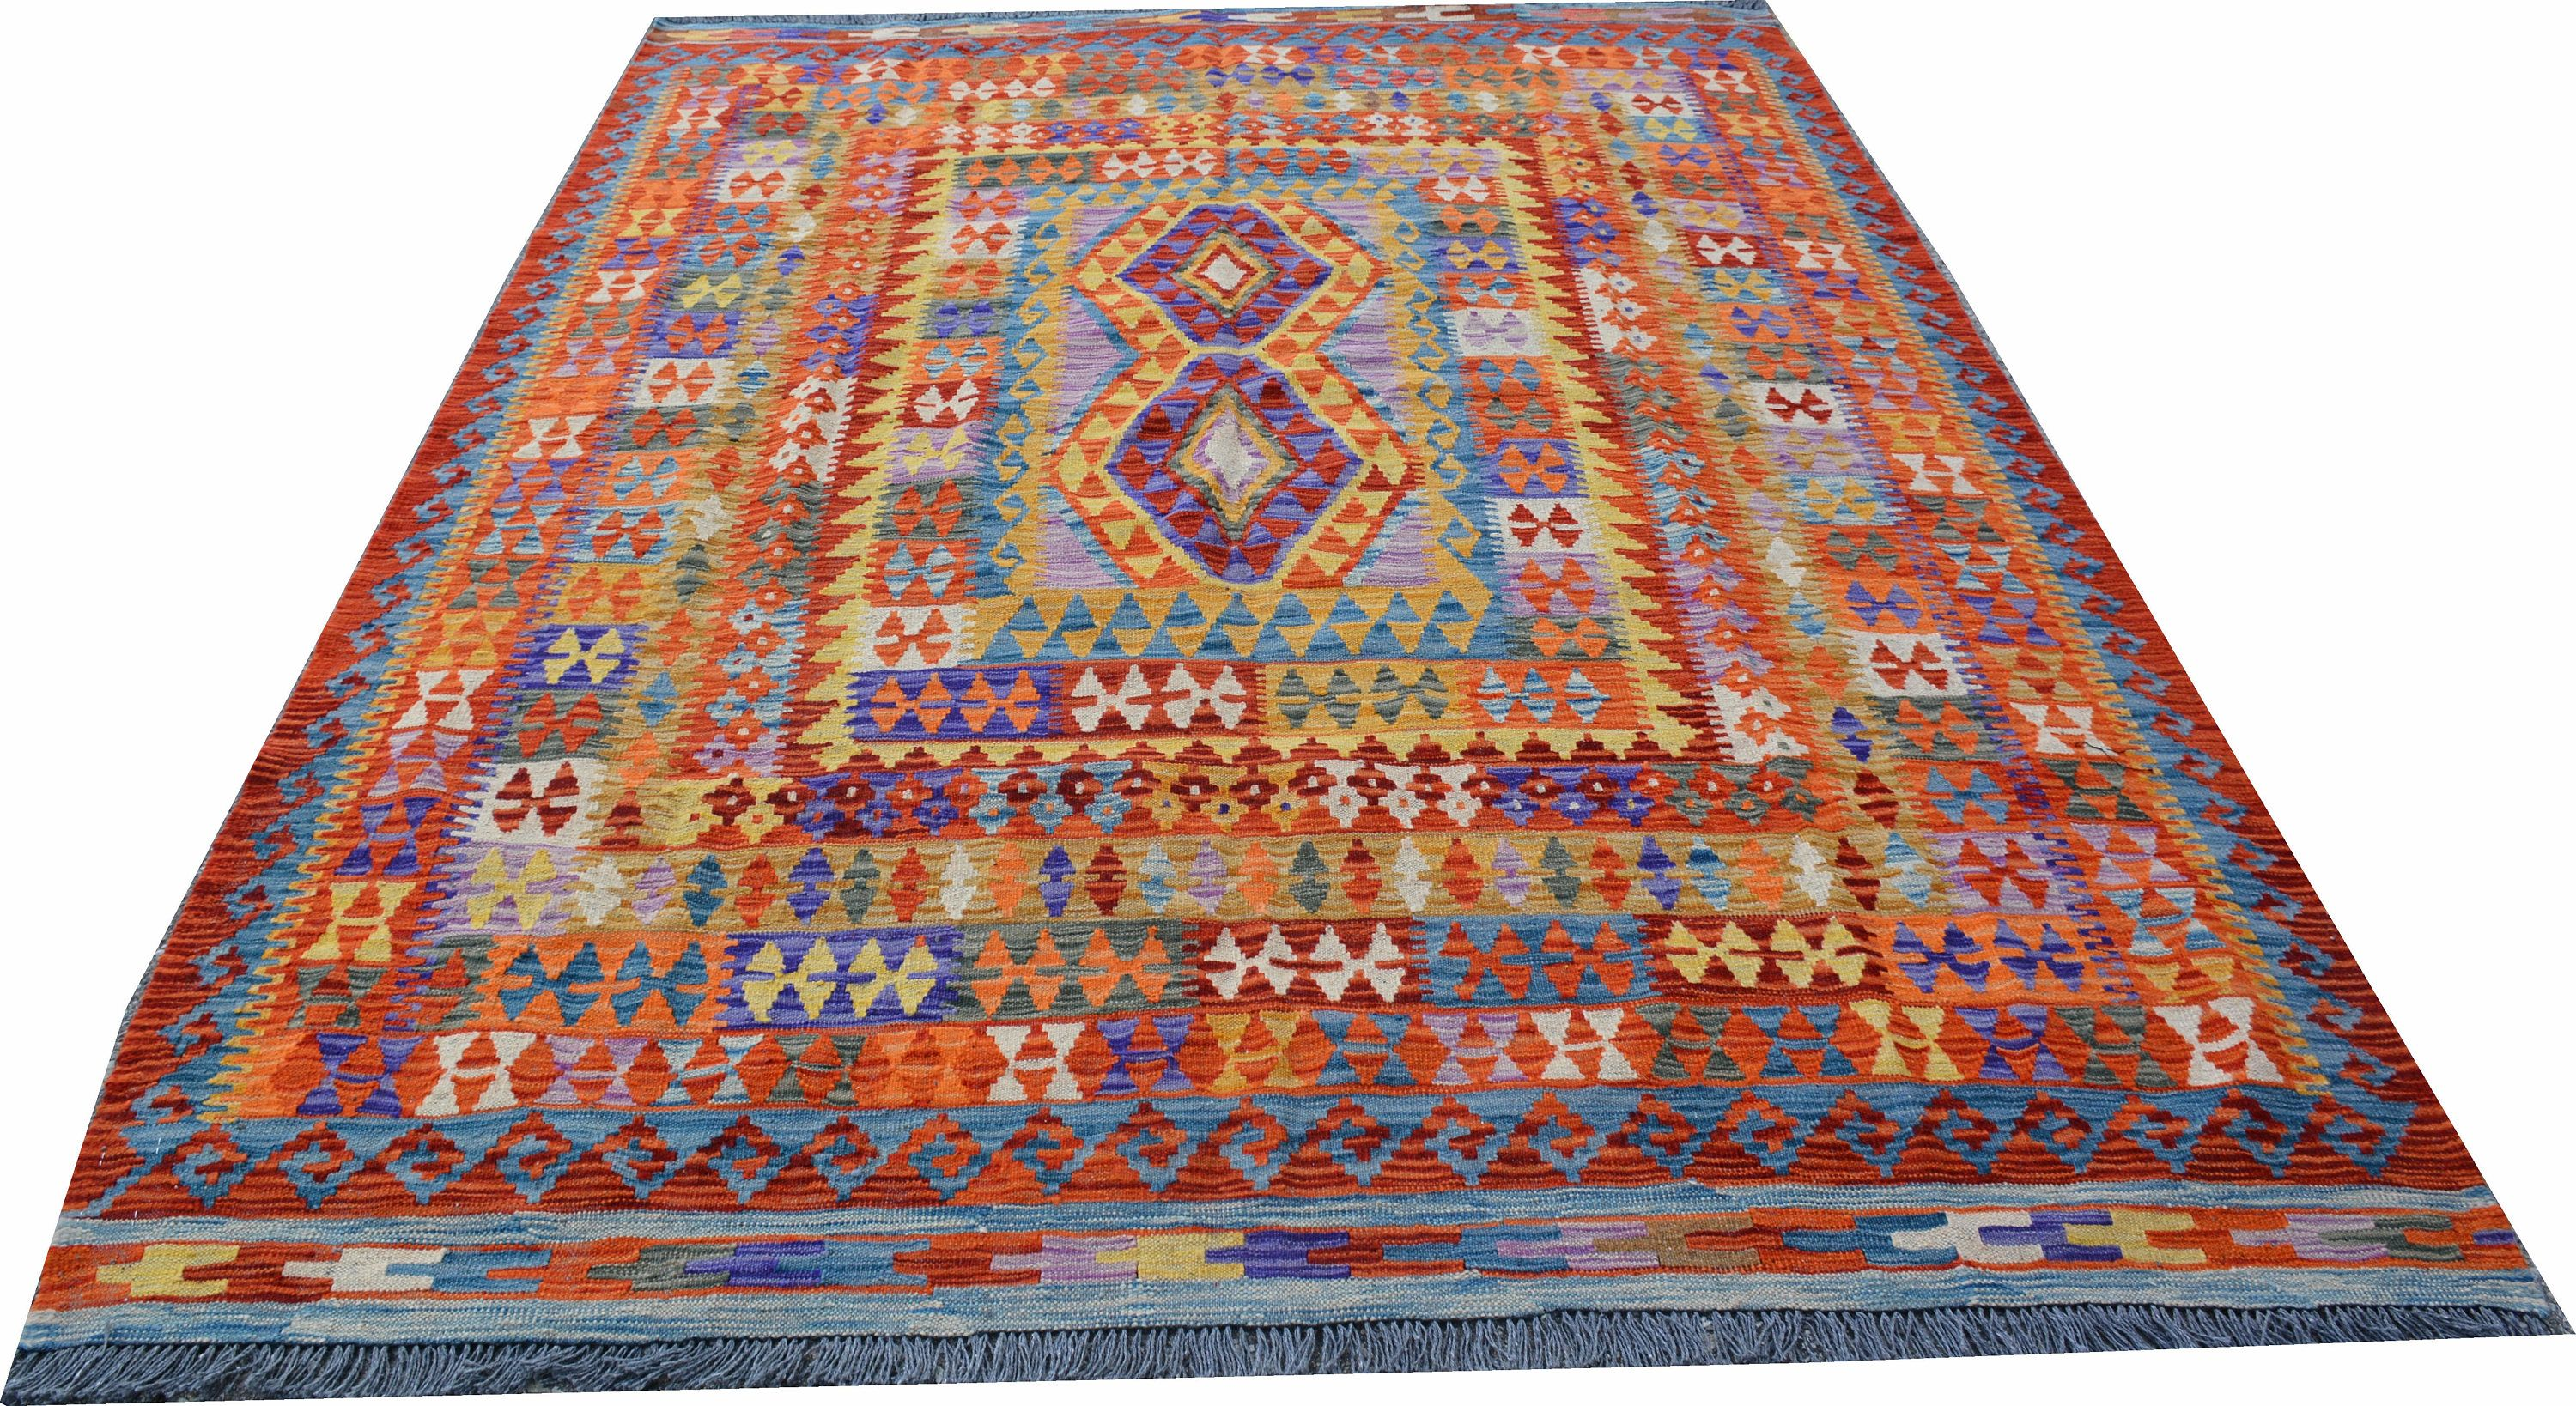 x kilim vintage store rug classic cm turkish style rugs carpet colorful antique handmade